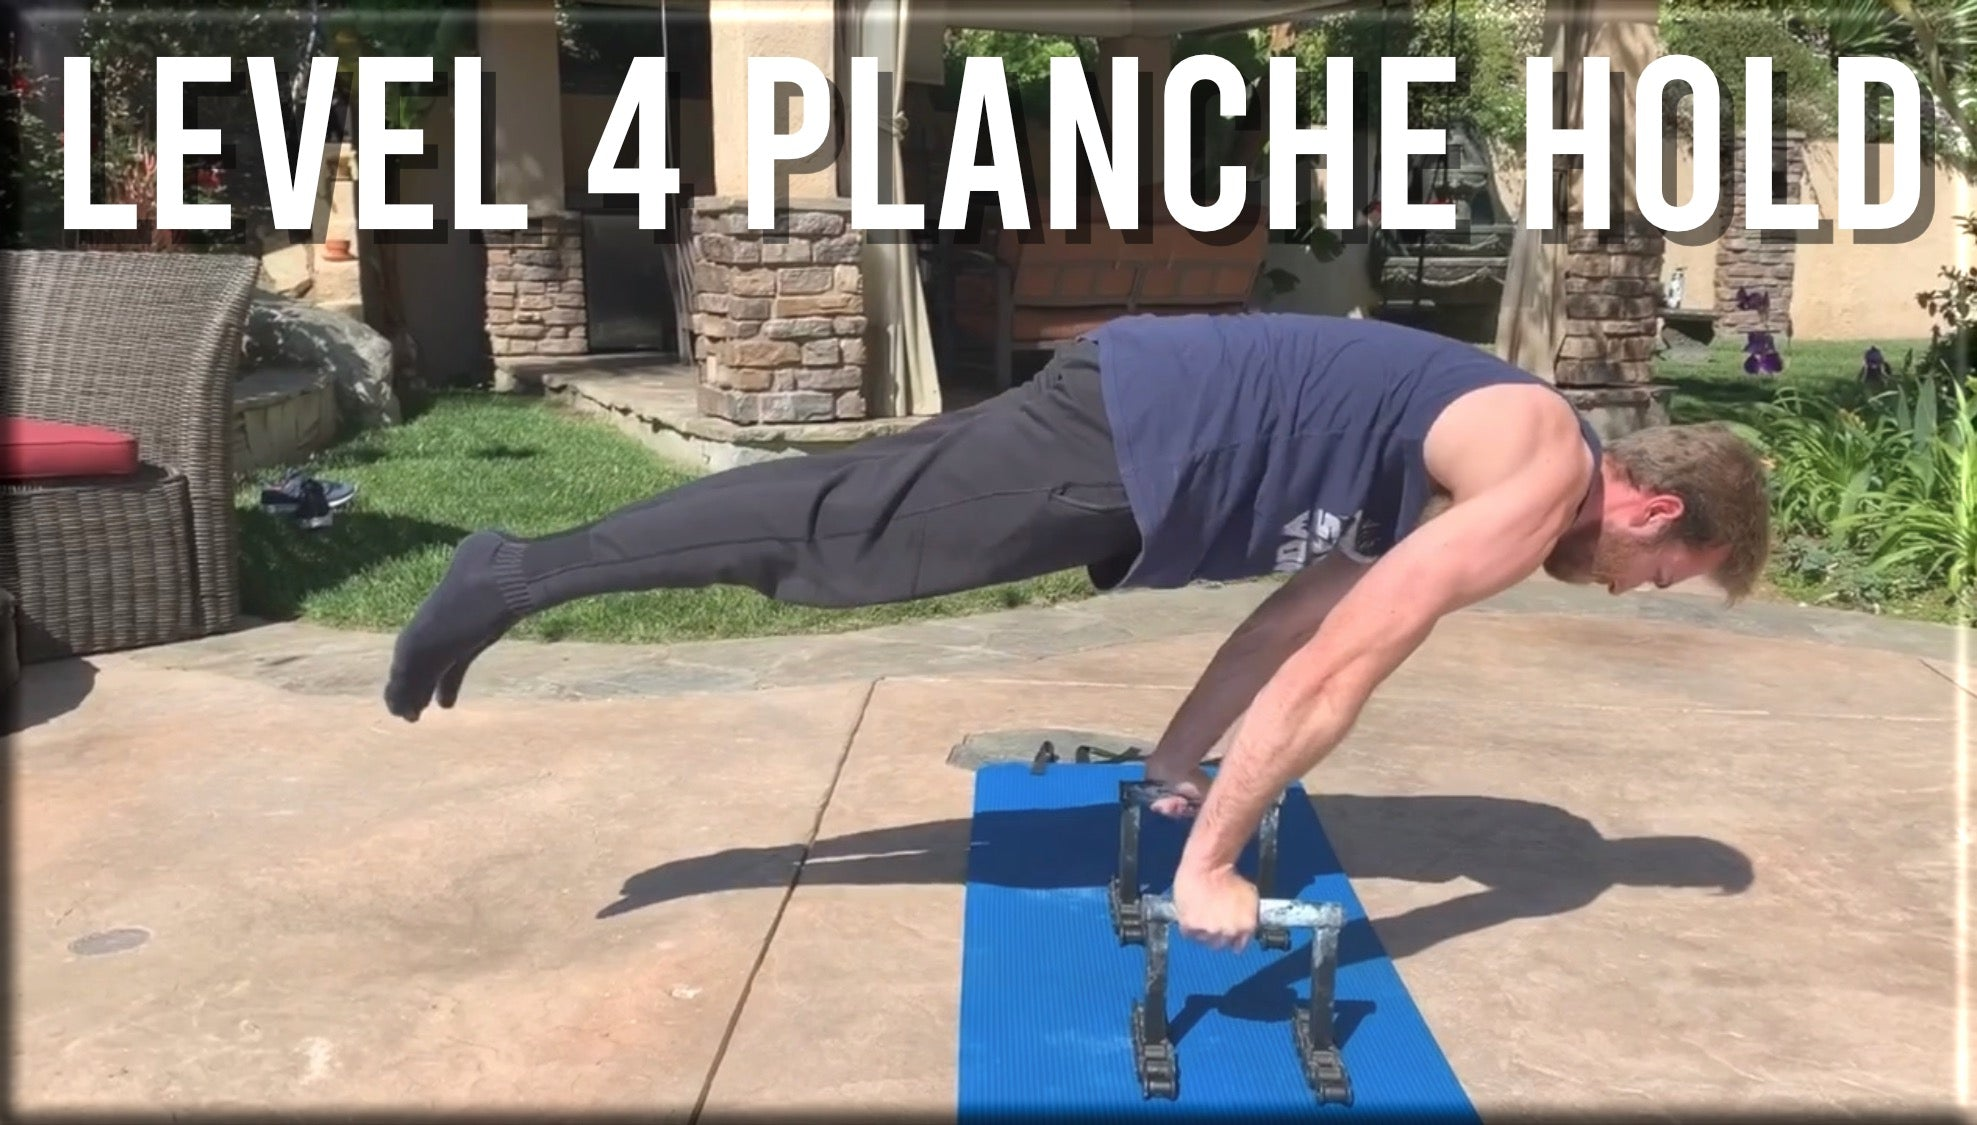 Level 4 Planche Hold